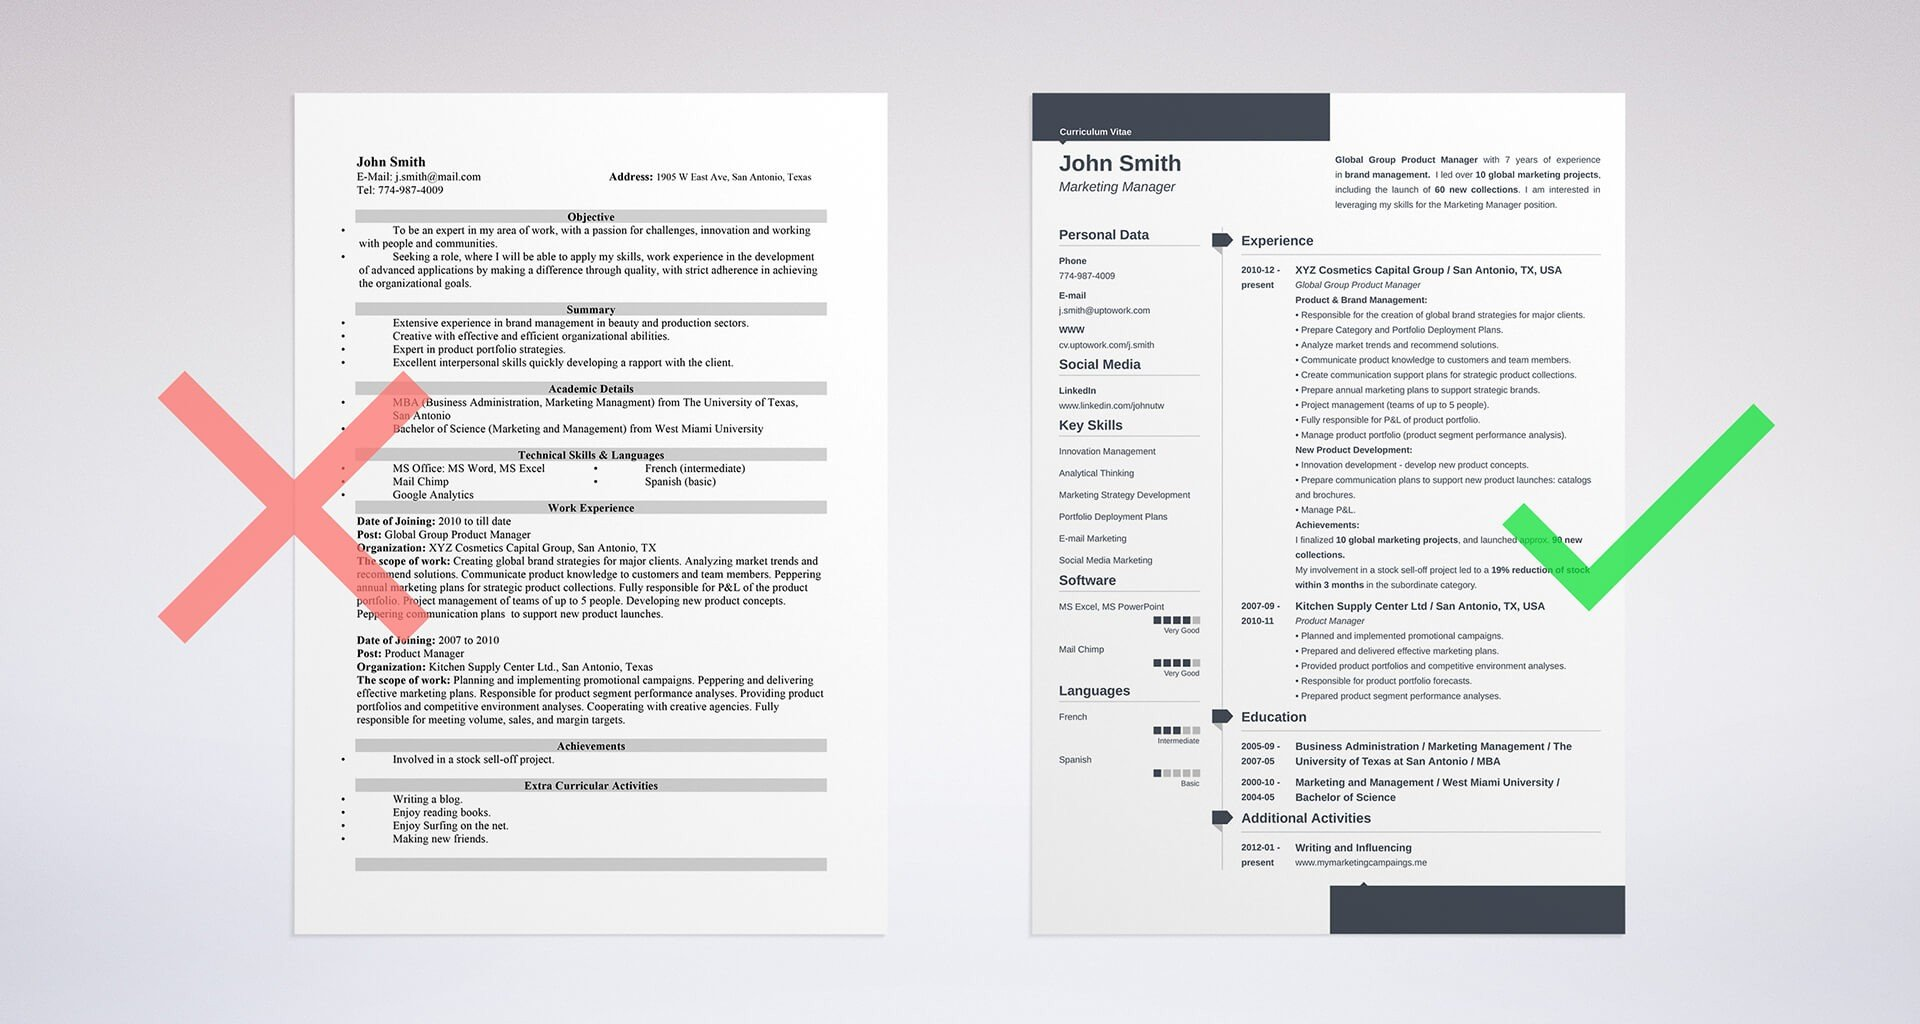 Great 1 Year Experience Resume Format For Java Big 1 Year Experience Resume Format For Java Developer Clean 11x17 Poster Template 1930s Newspaper Template Old 2 Page Resume Format Header Fresh2 Week Schedule Template How To Write A Resume Summary: 21 Best Examples You Will See